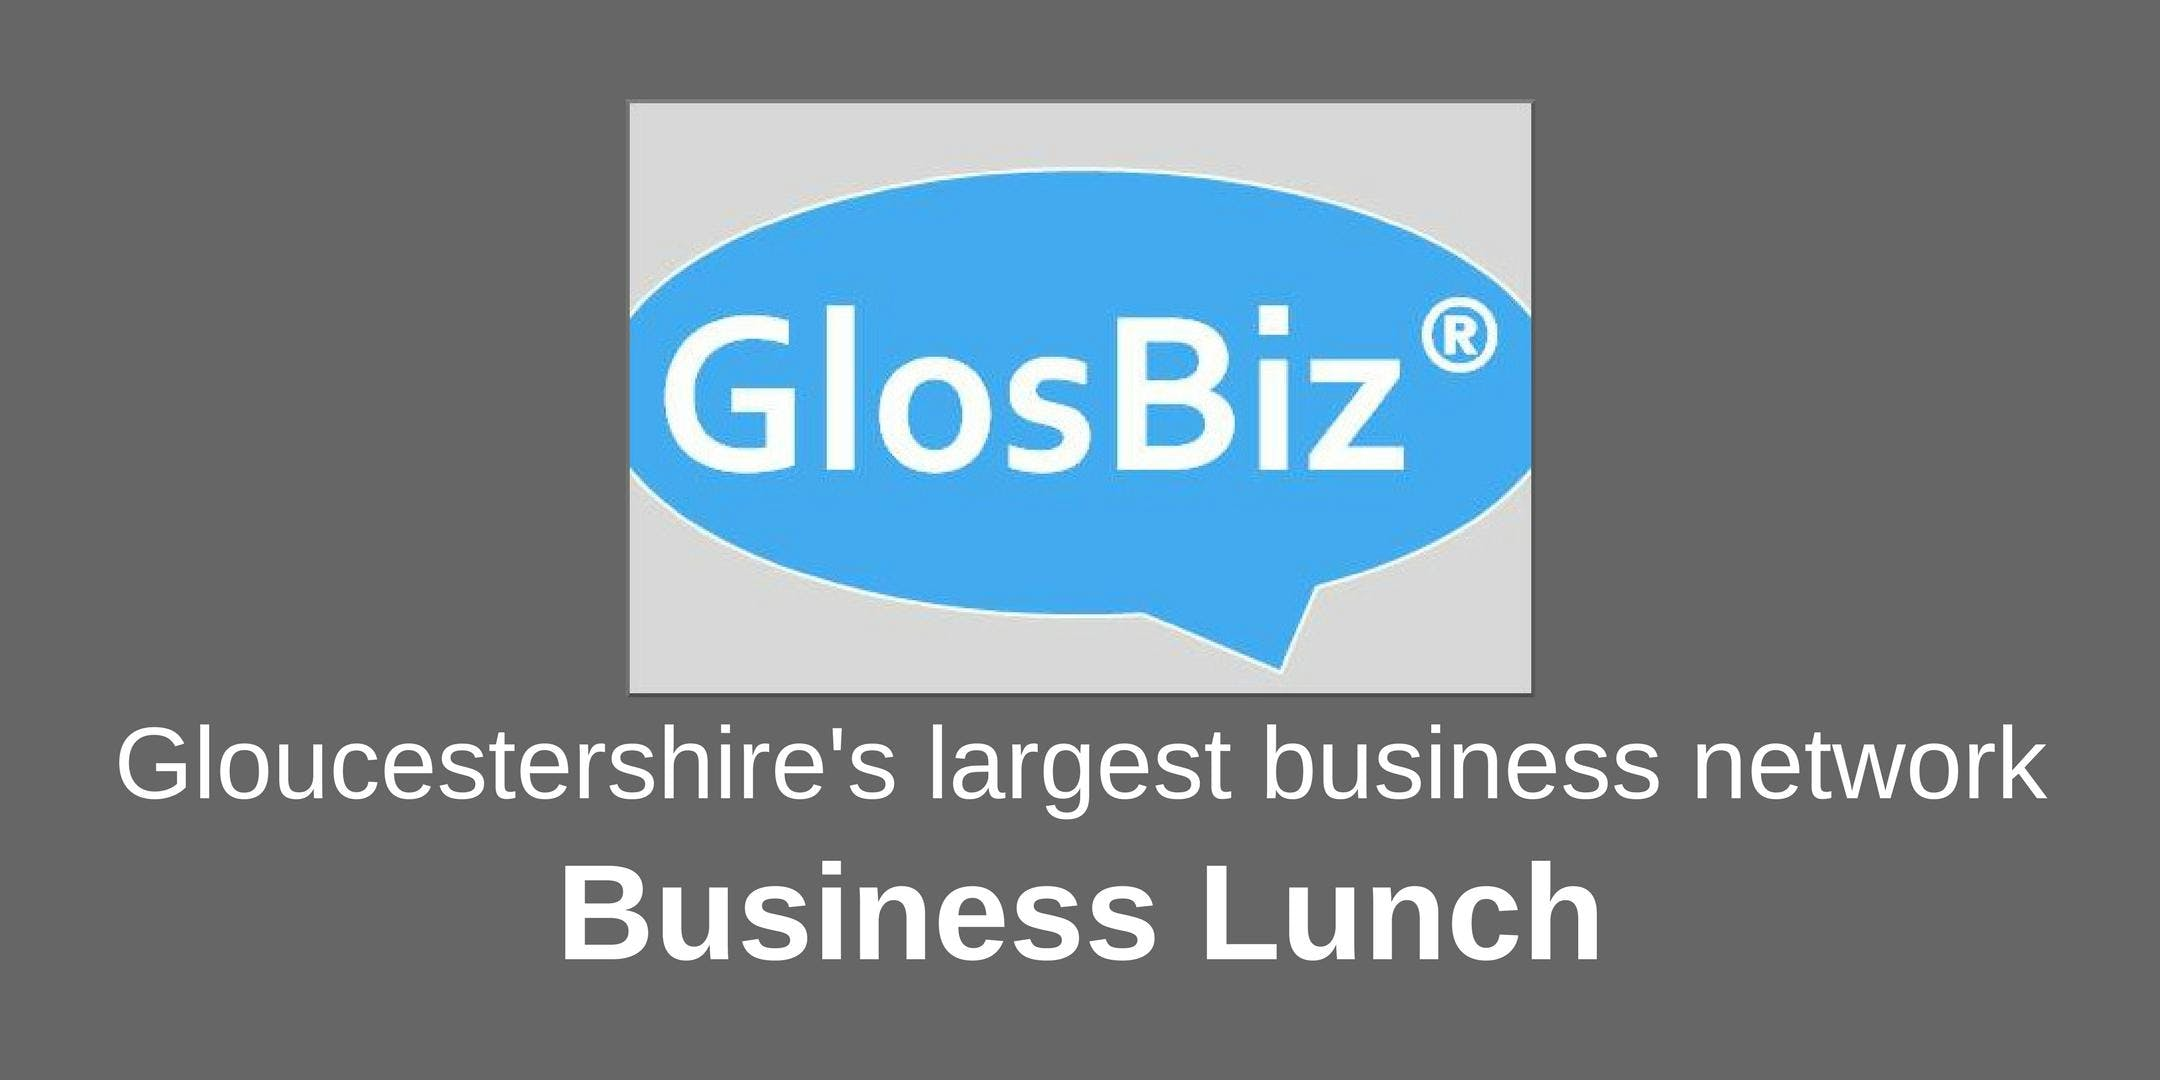 GlosBiz® Business Lunch: Wednesday 20 March,